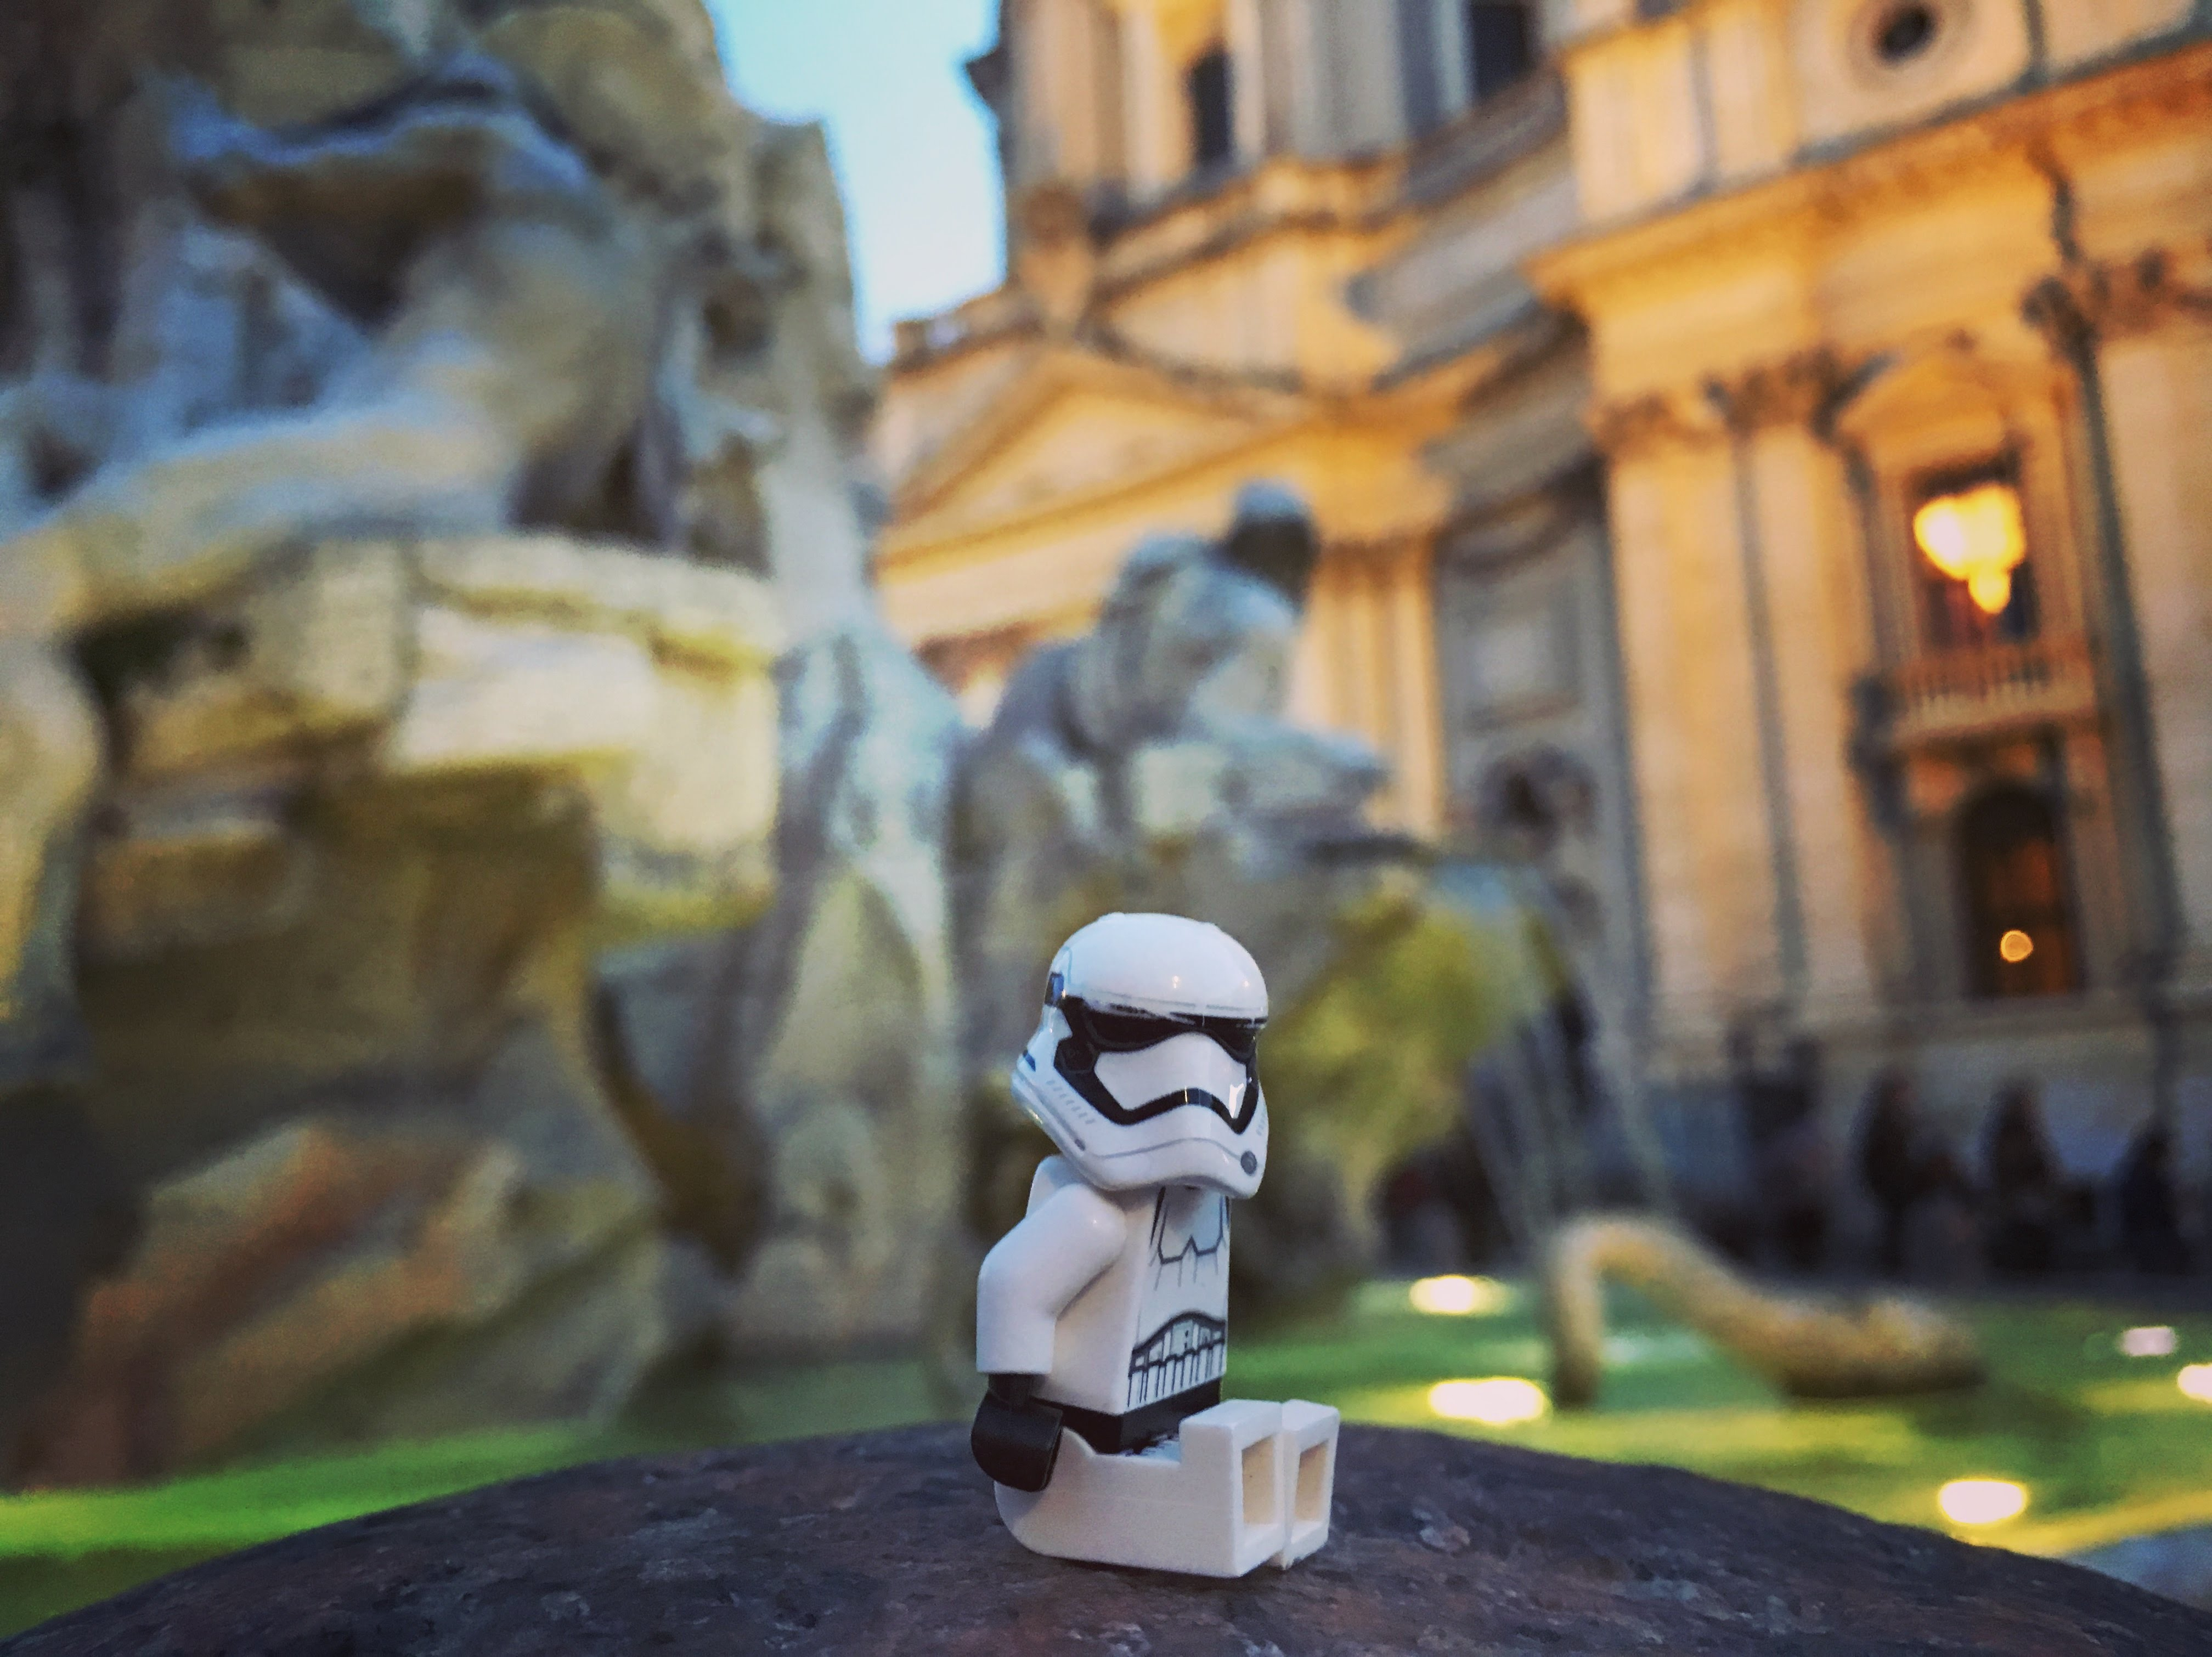 LEGO Adventures in Rome with AmieDD